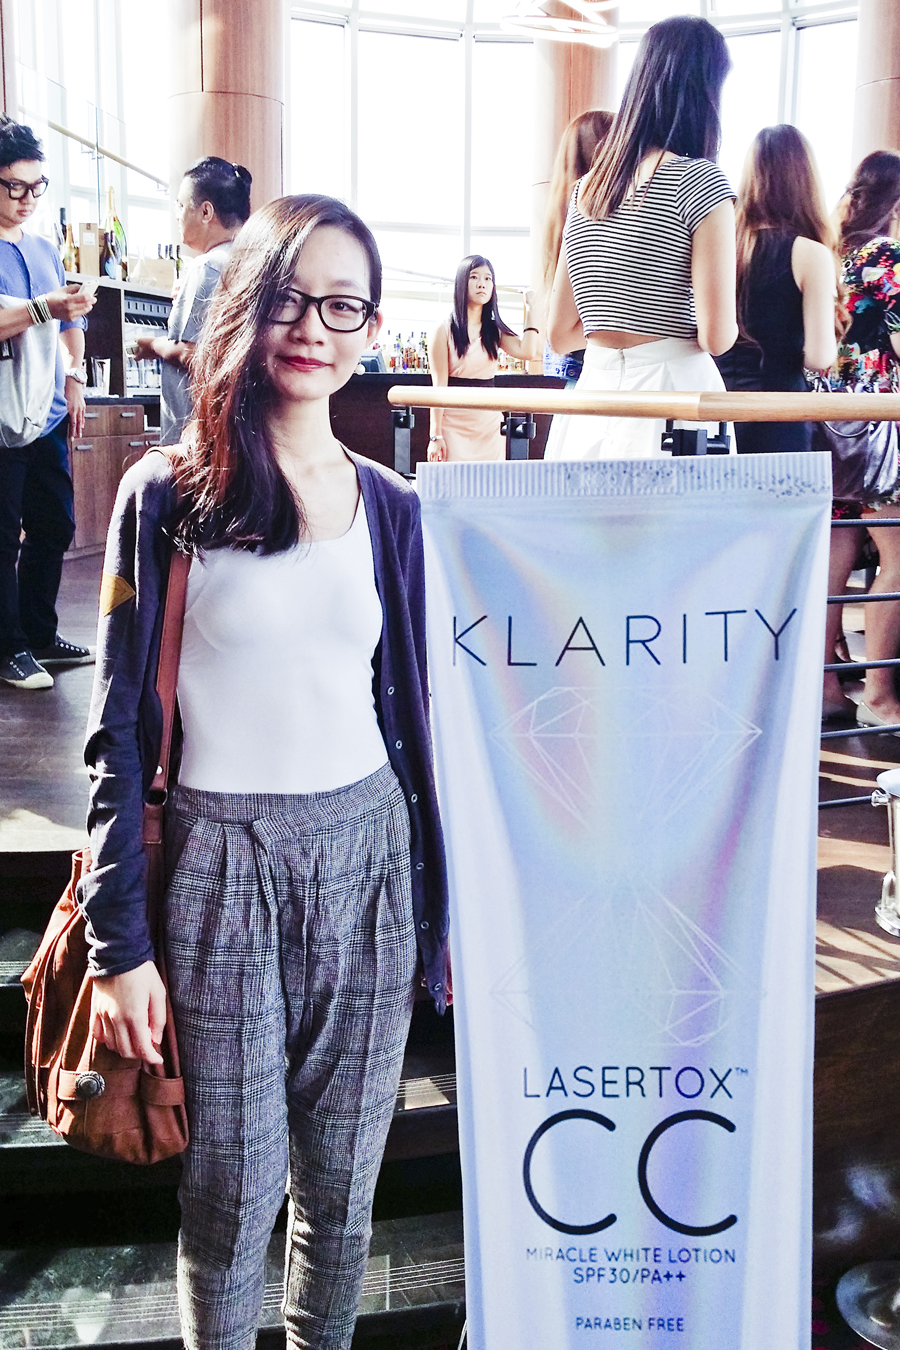 Ren posing with the Klarity CC cream cut-out at the Klarity Beauty Brunch event.